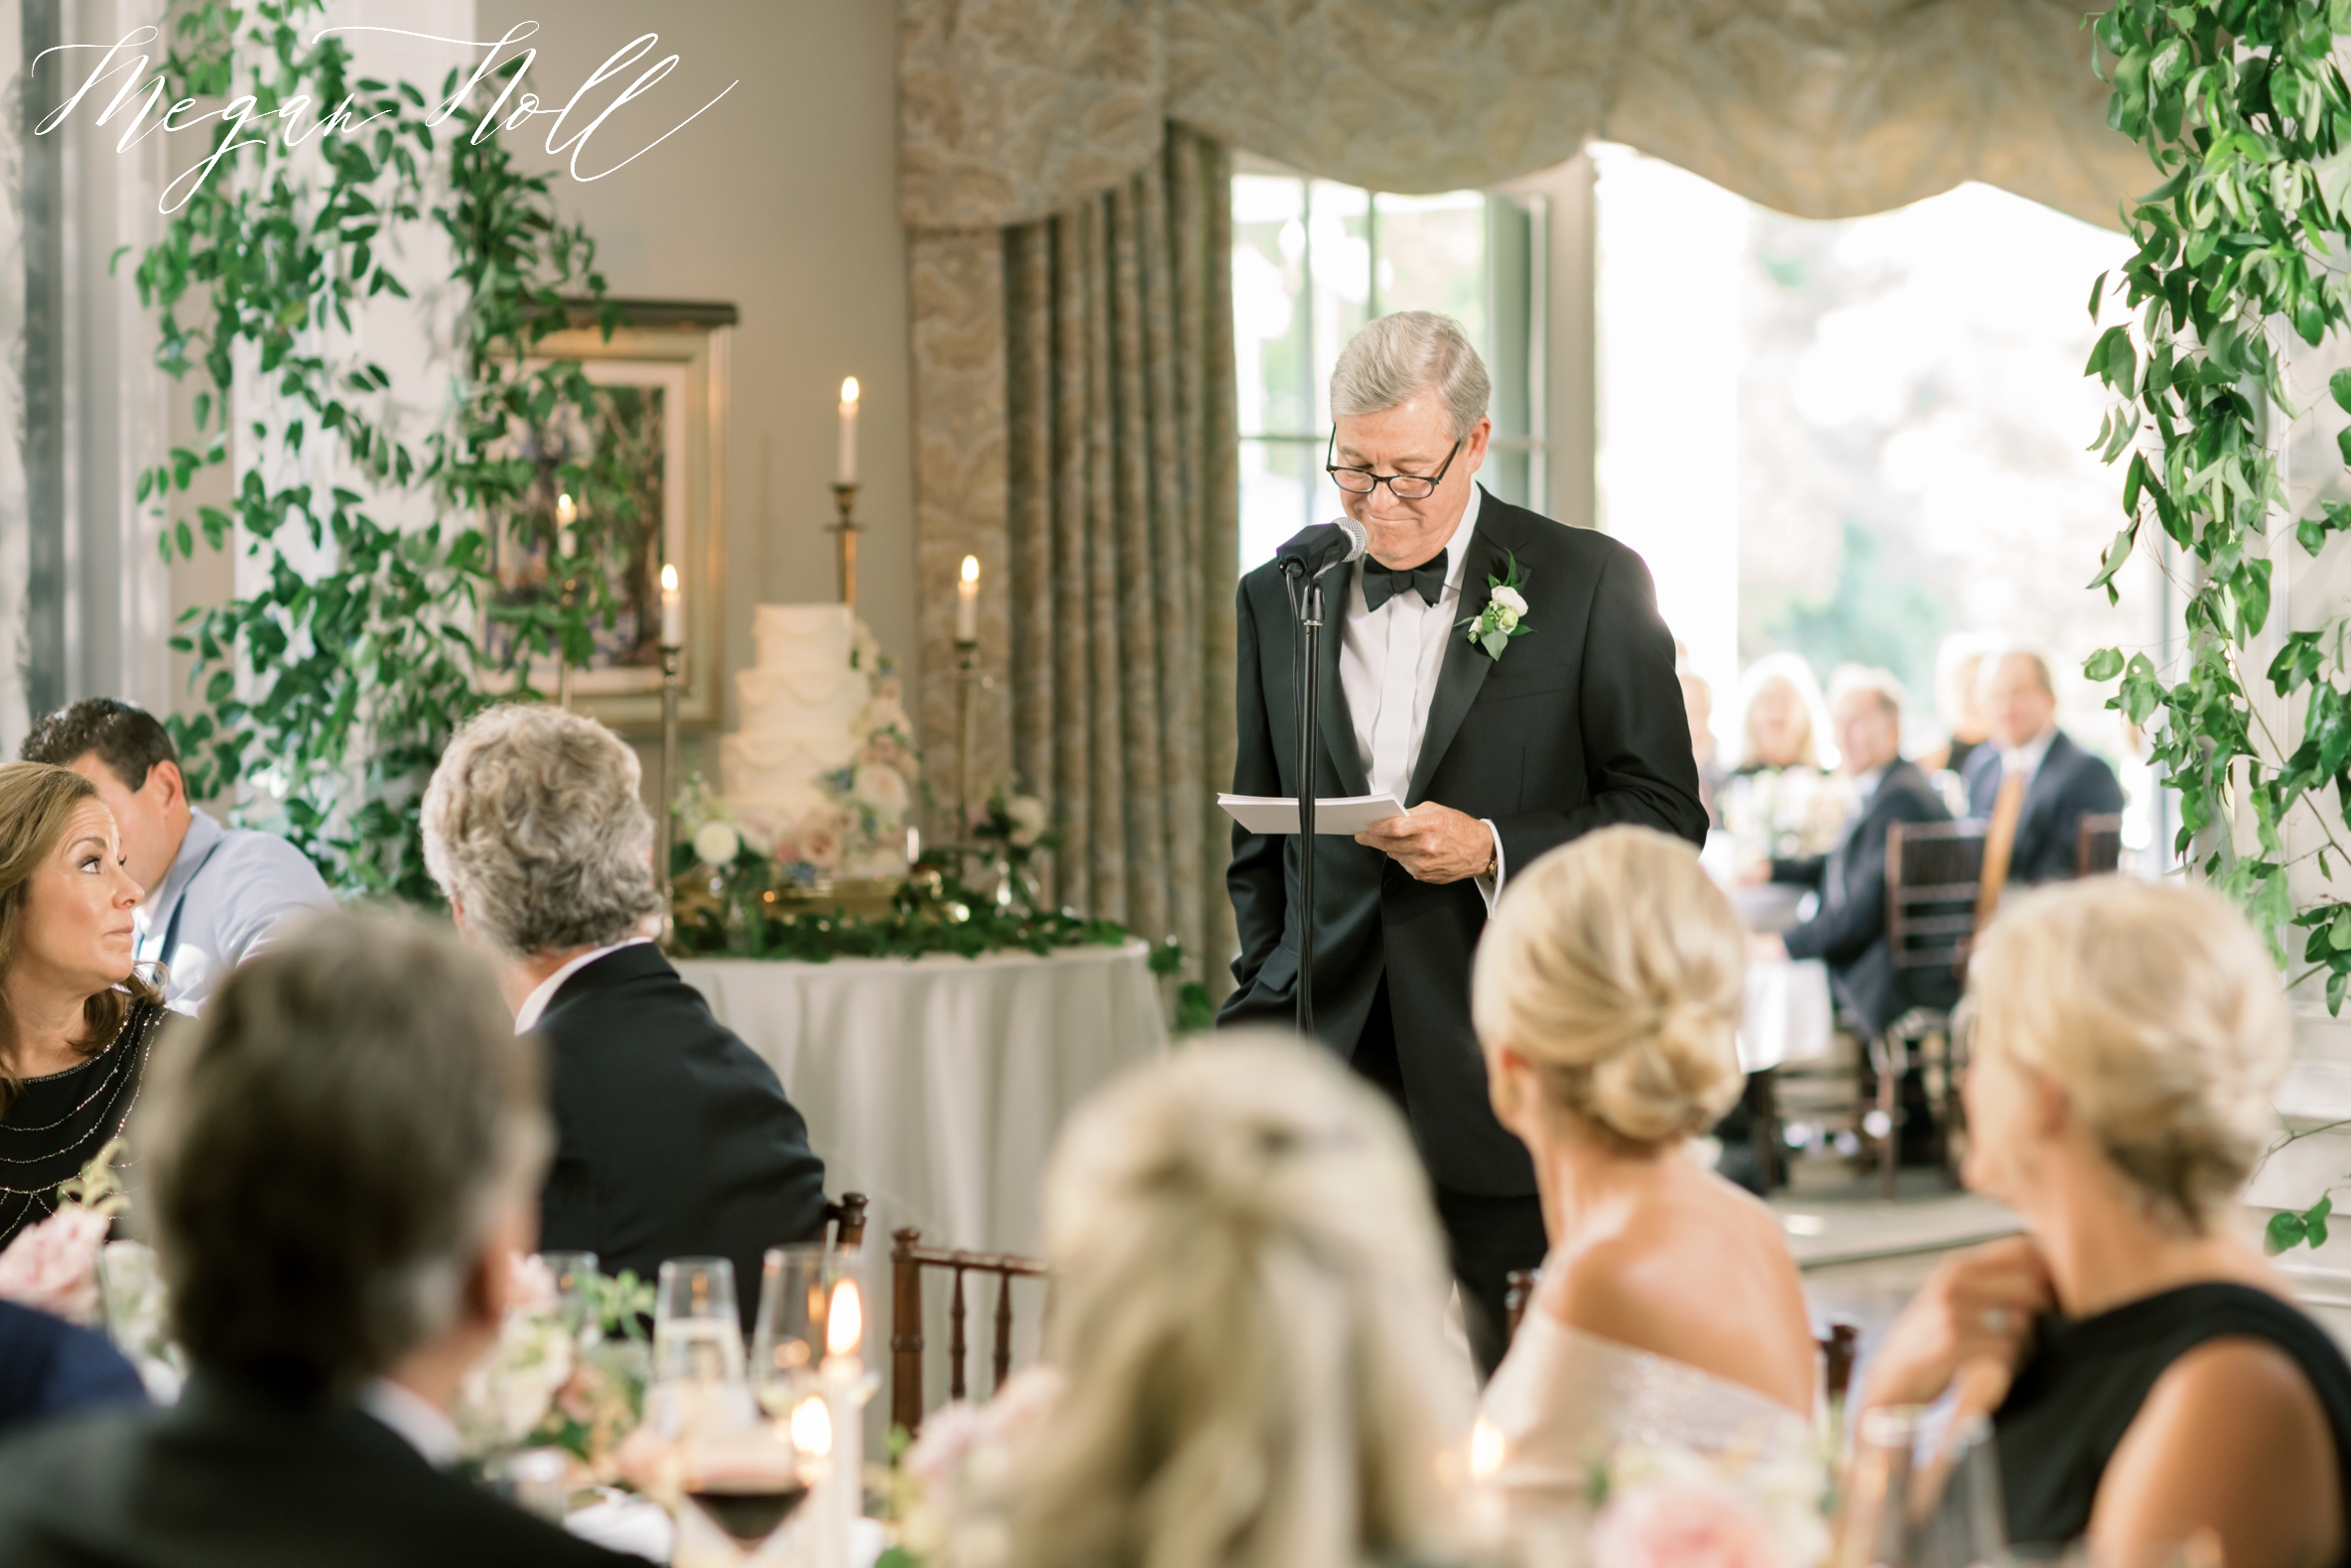 Father of the Bride giving toast in Kentucky Wedding